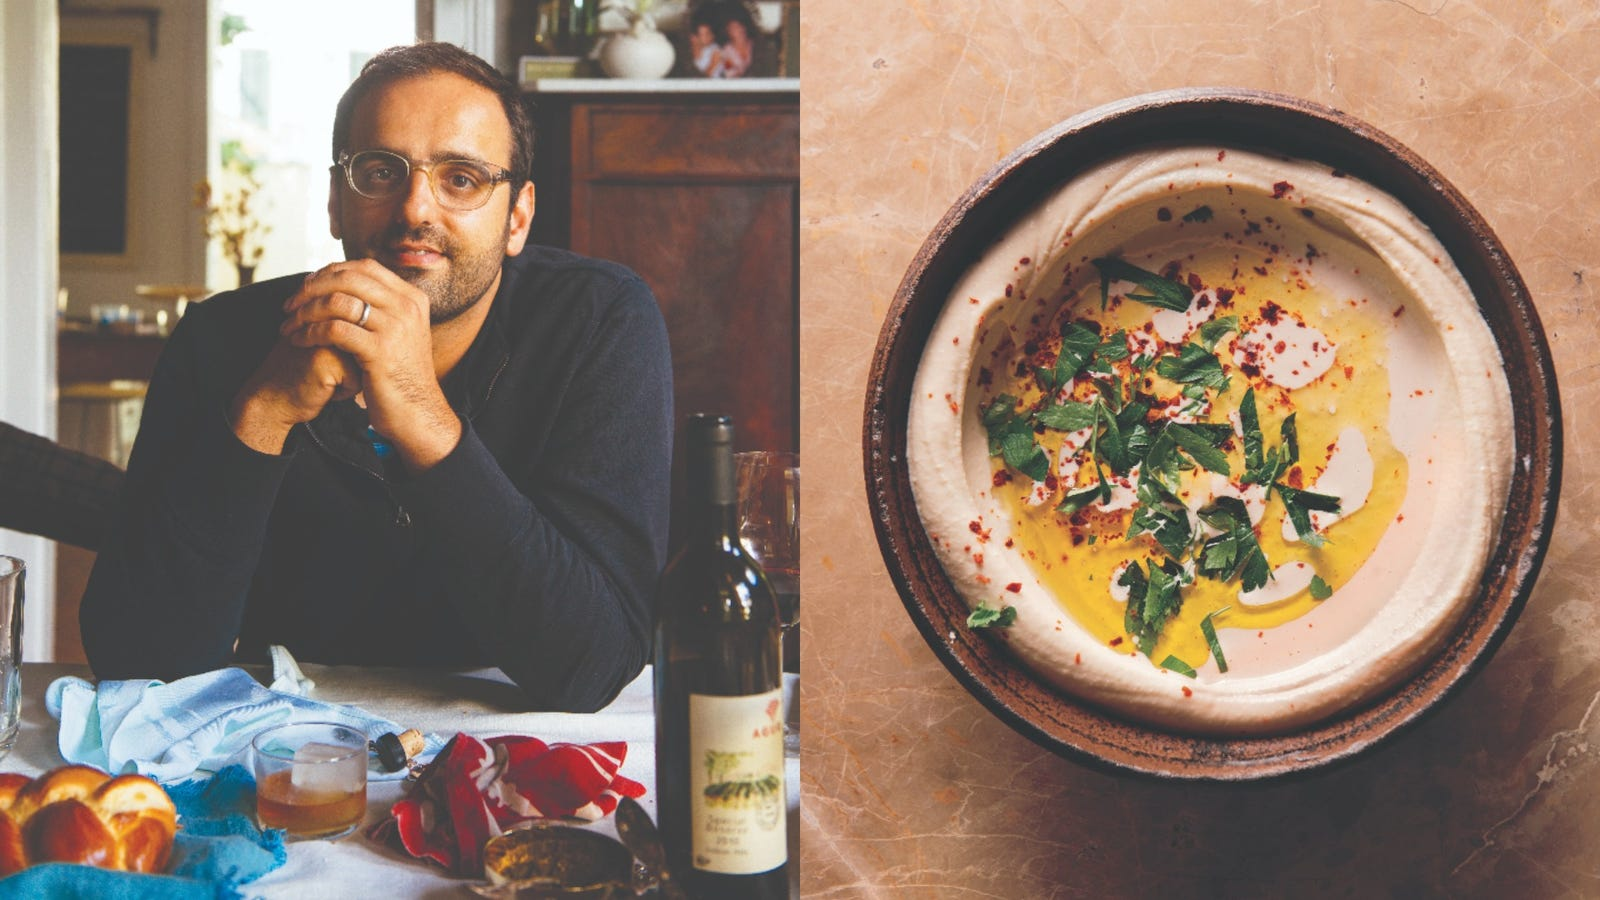 Alon Shaya is America's king of hummus. Heed his advice.